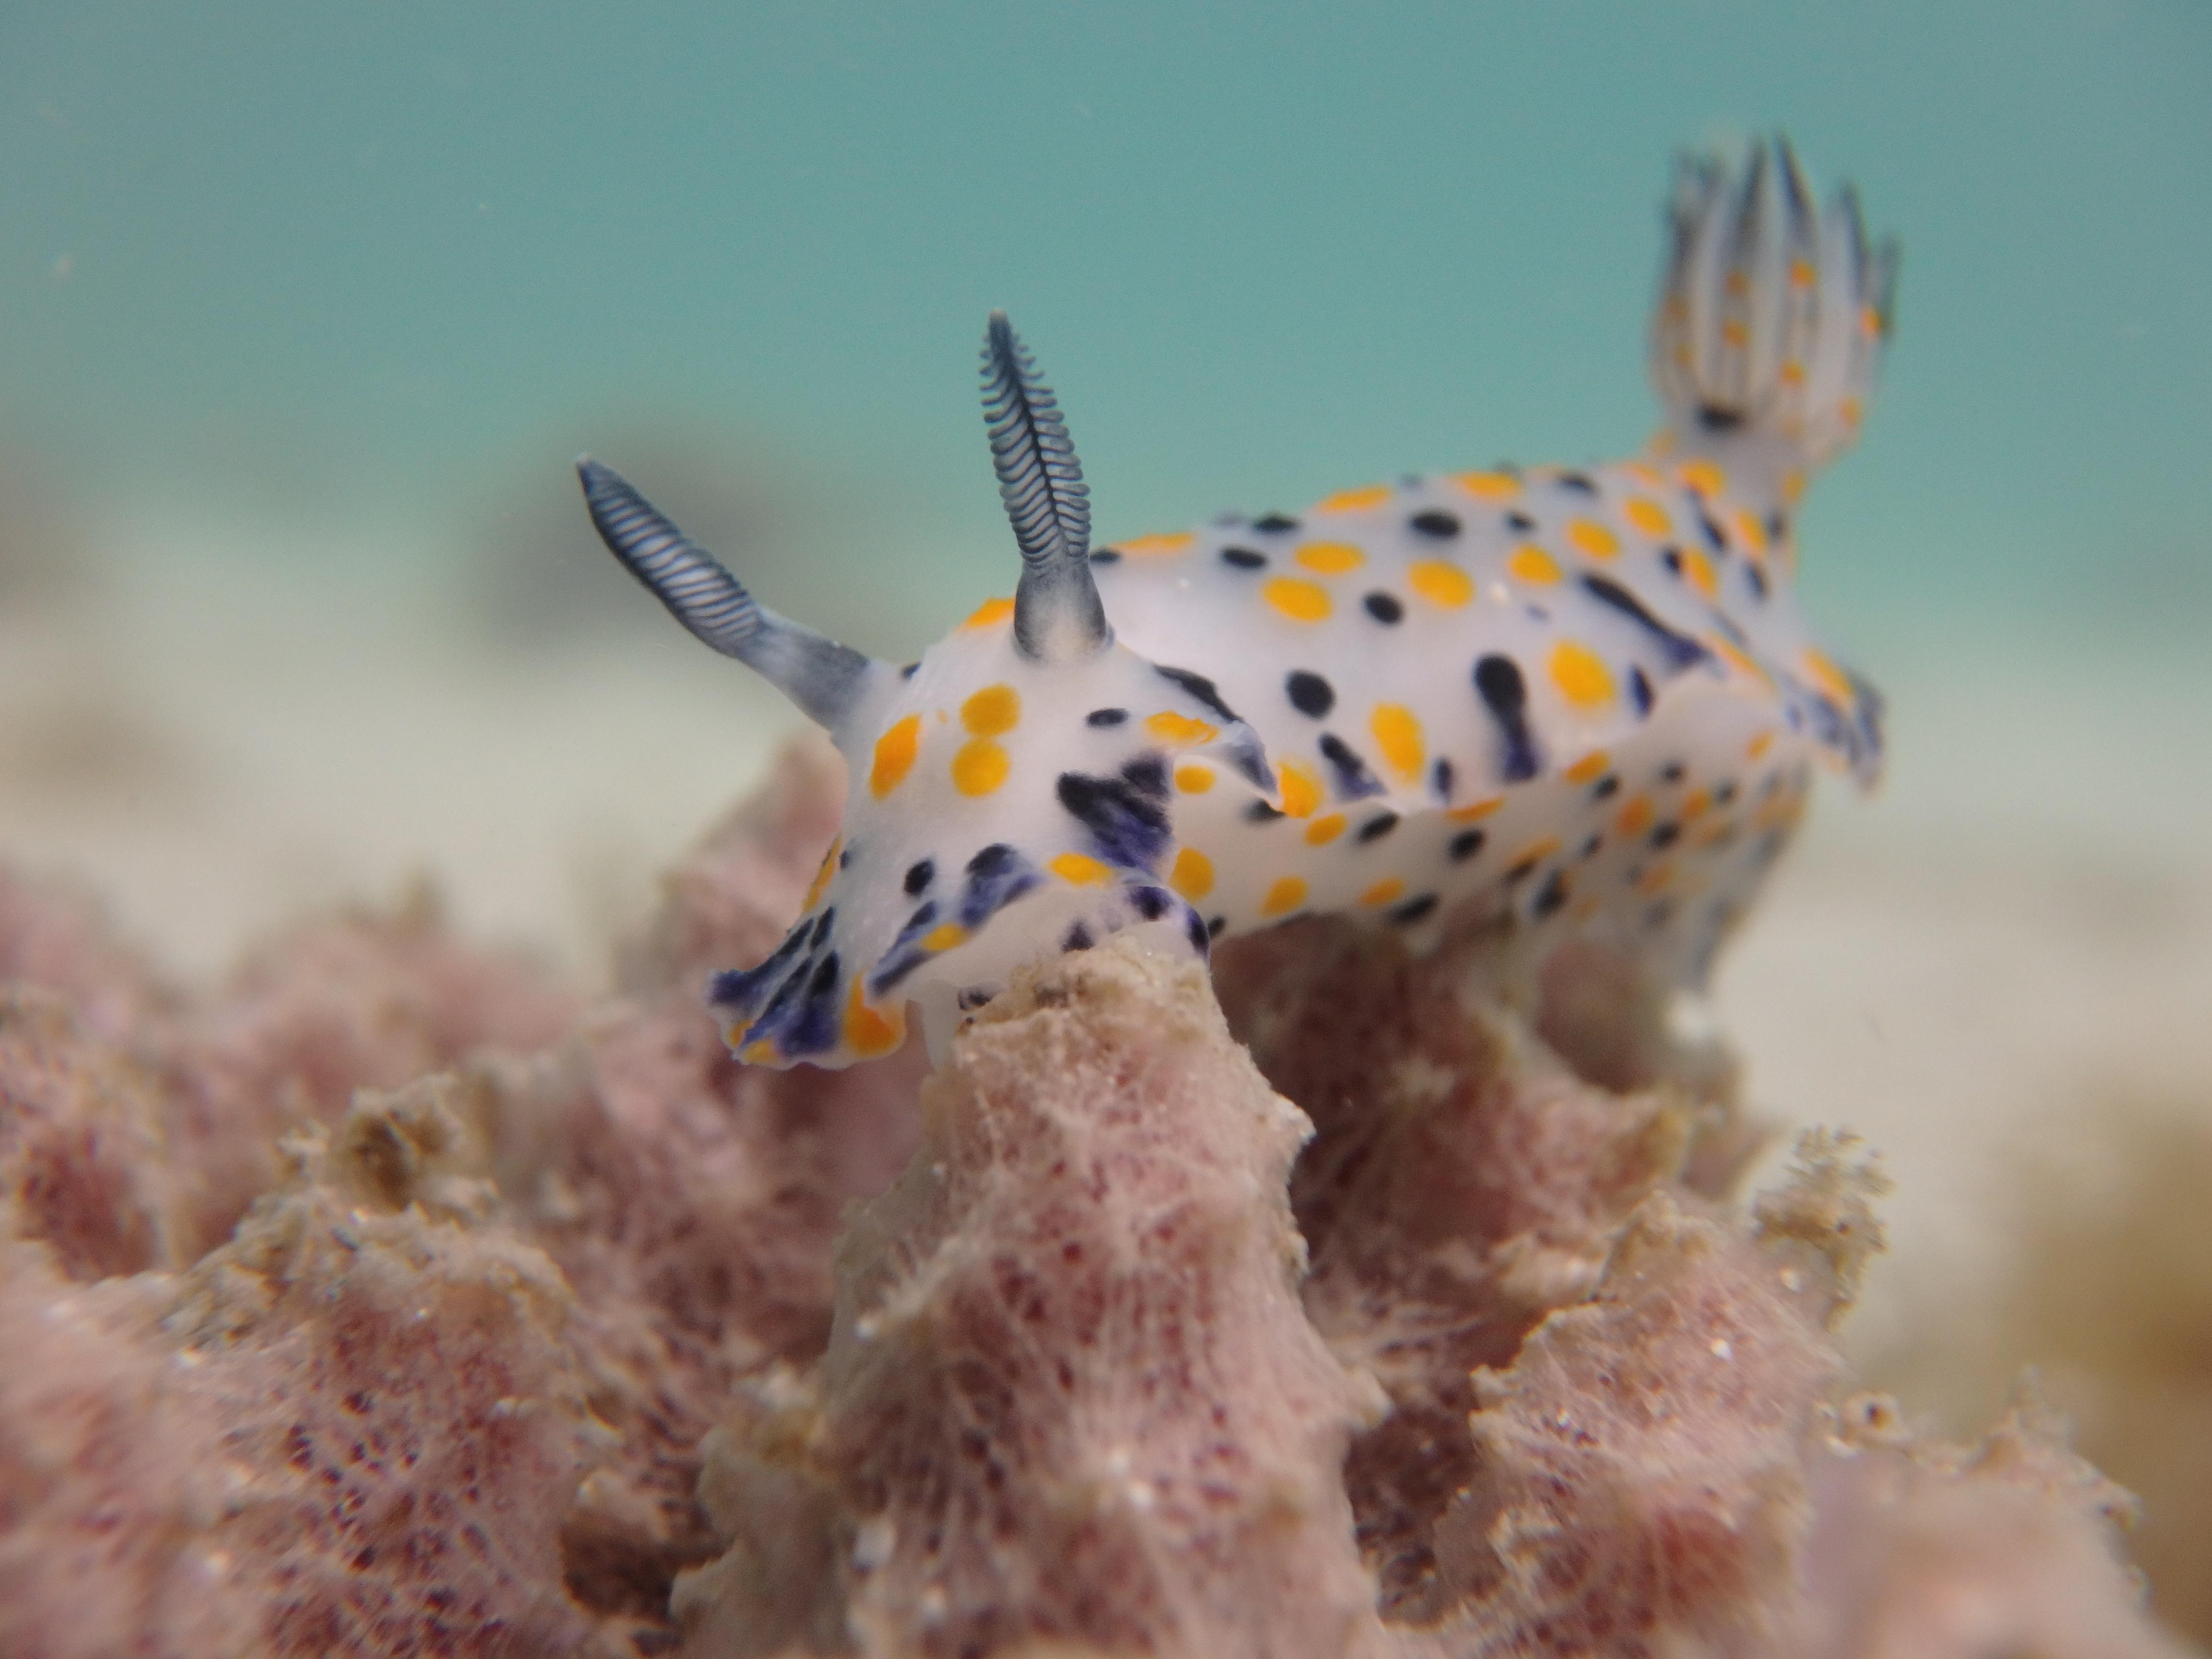 New Nudibranch species for our database